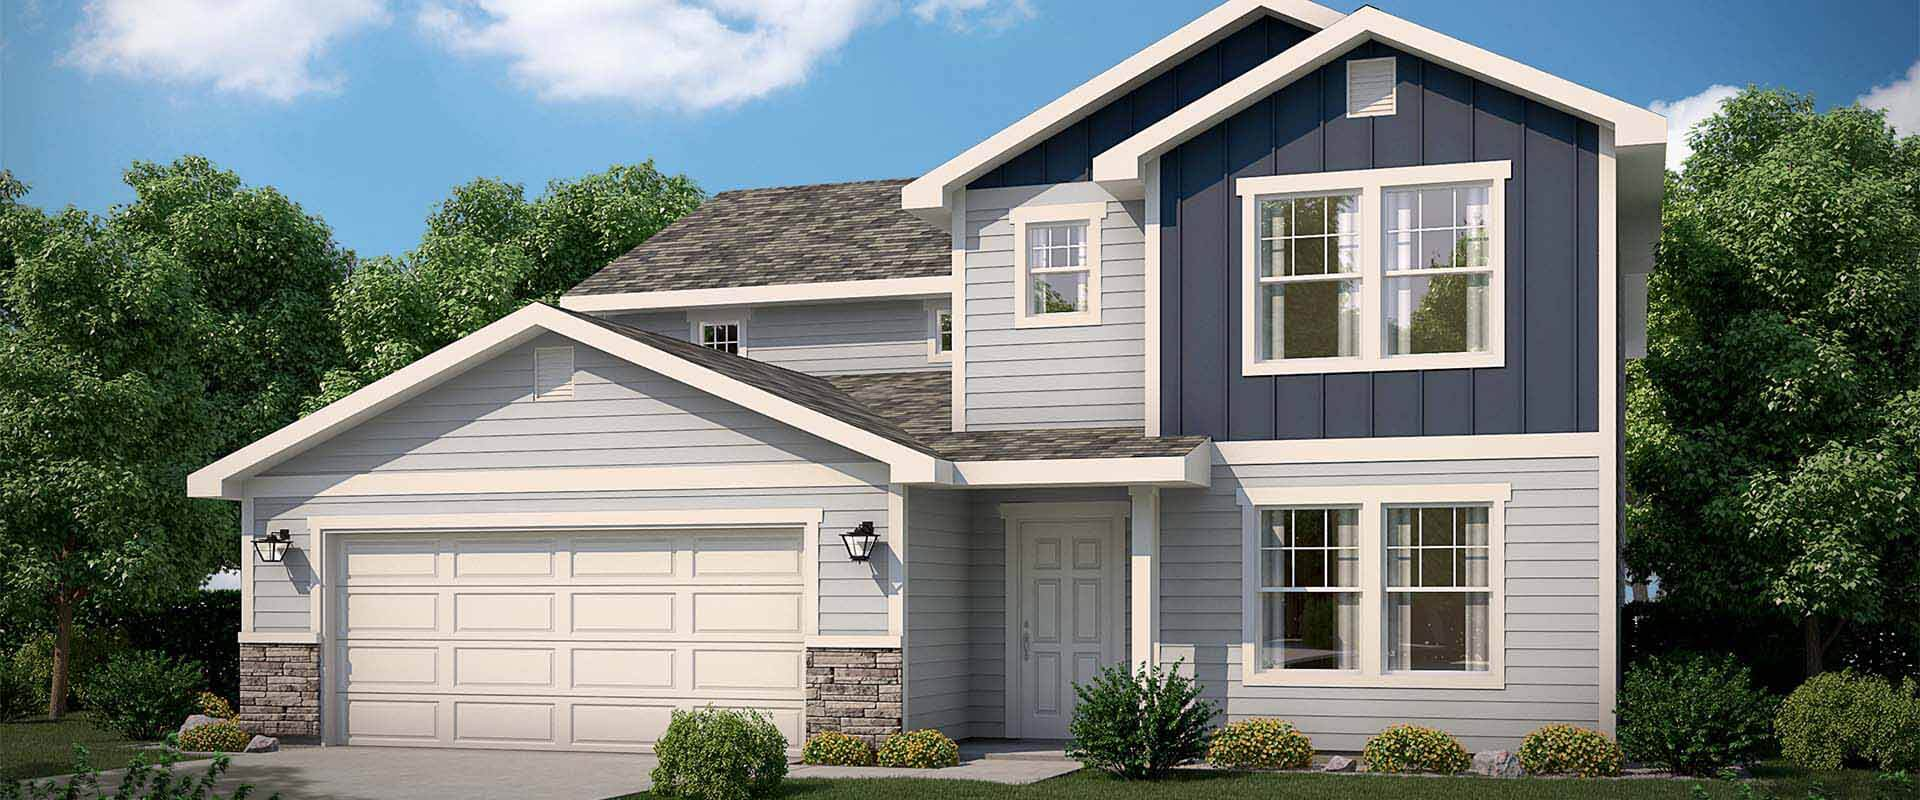 Cedar-Country-new-homes-boise-idaho-hubble-homes.jpg